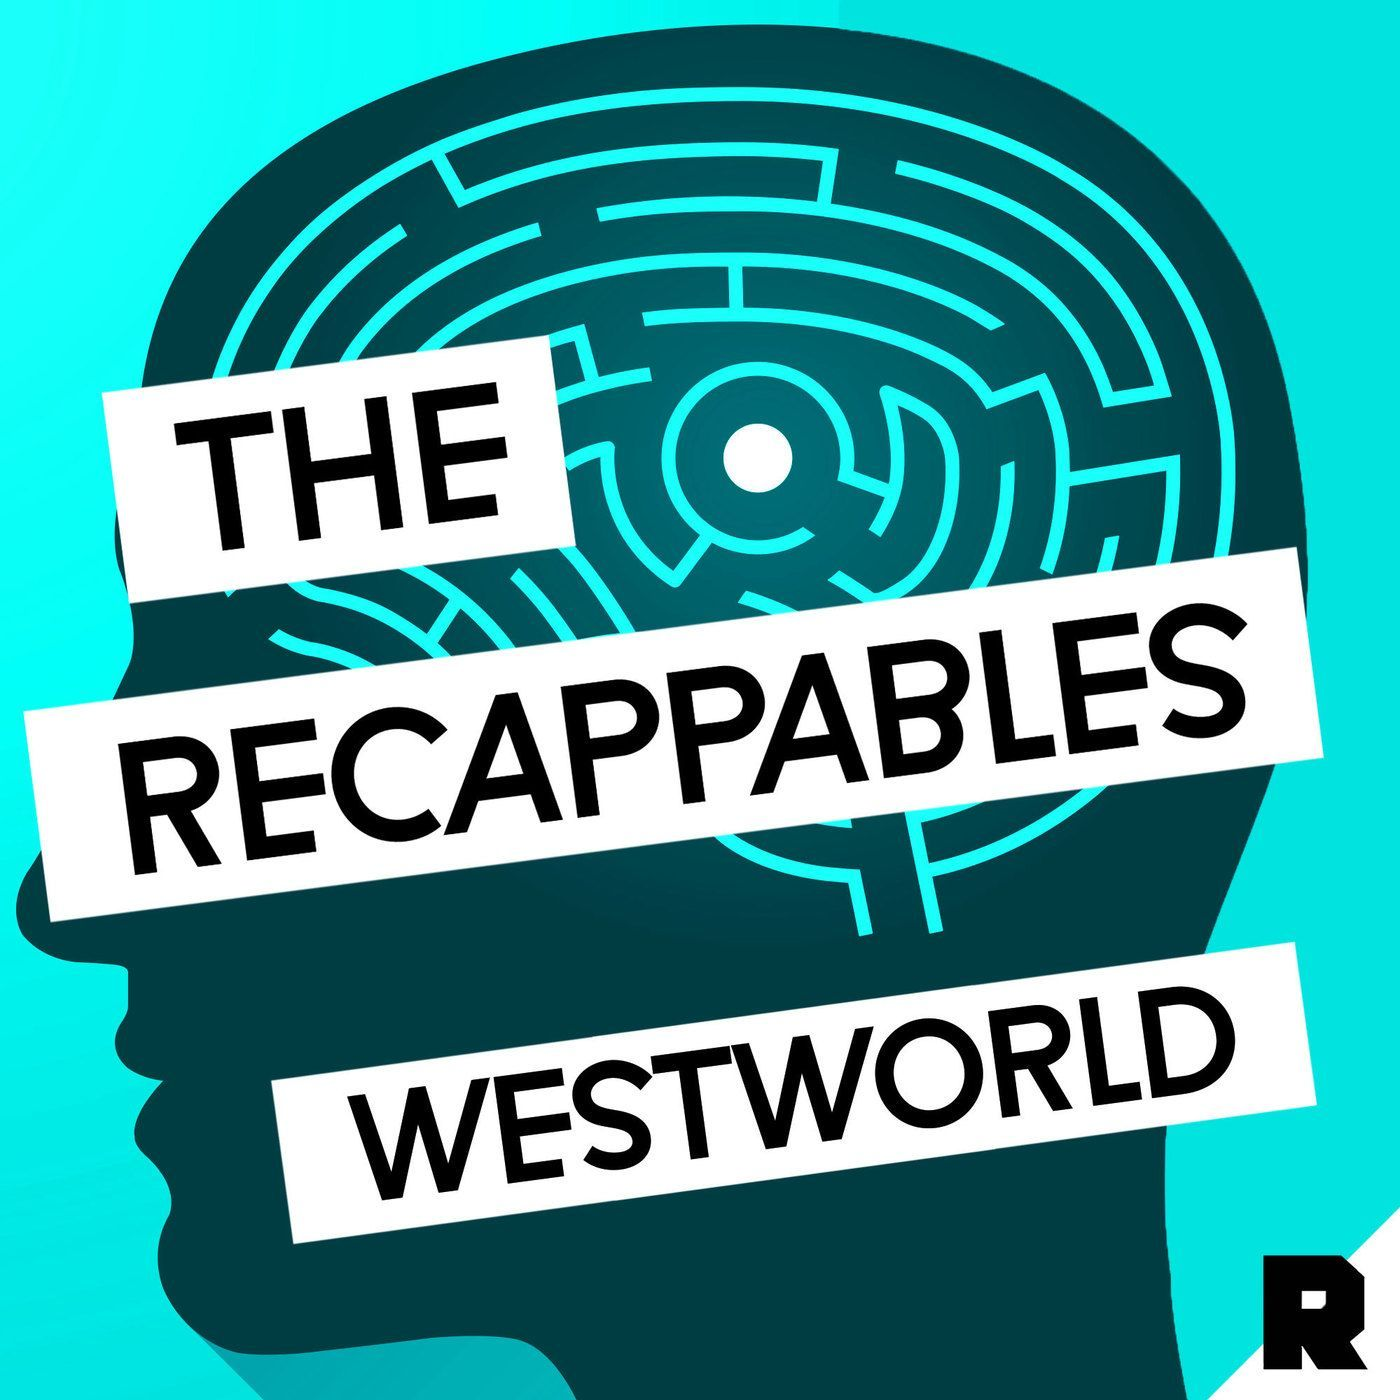 'Westworld' Season 2 Recap